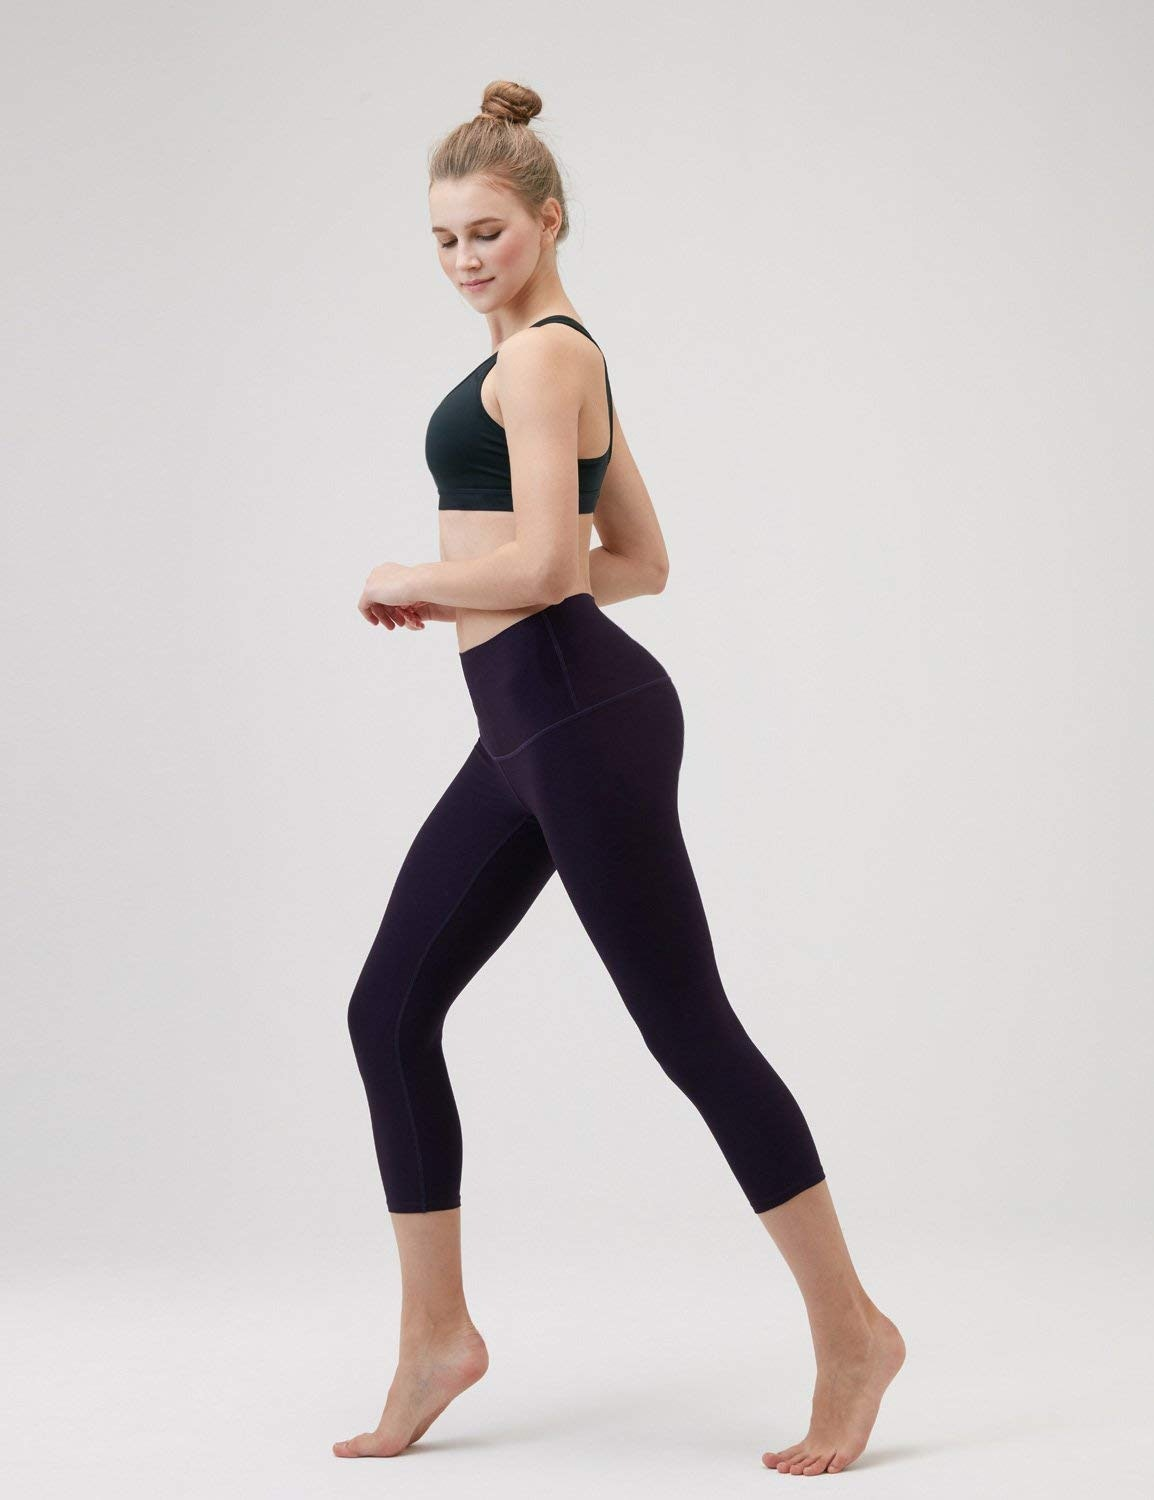 cebdf4d49e2e21 The 7 Best Cheap Yoga Leggings